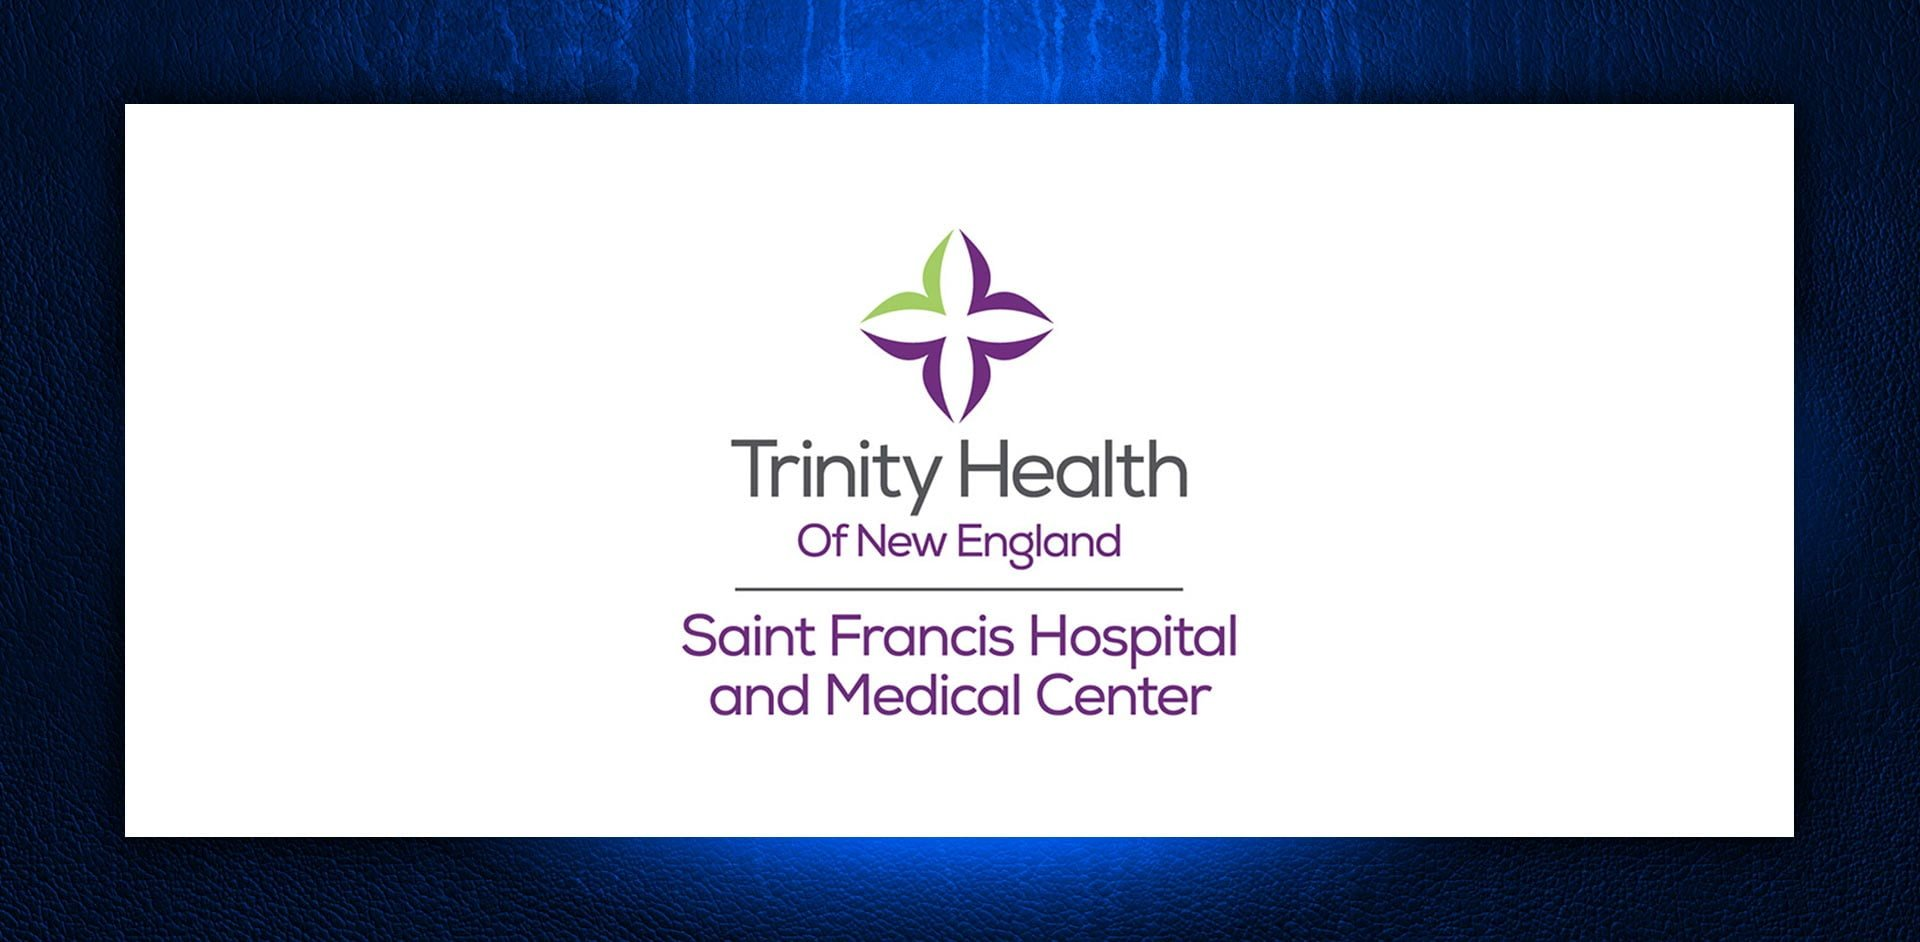 Trinity Health Of New England- Saint Francis Hospital and Medical Center